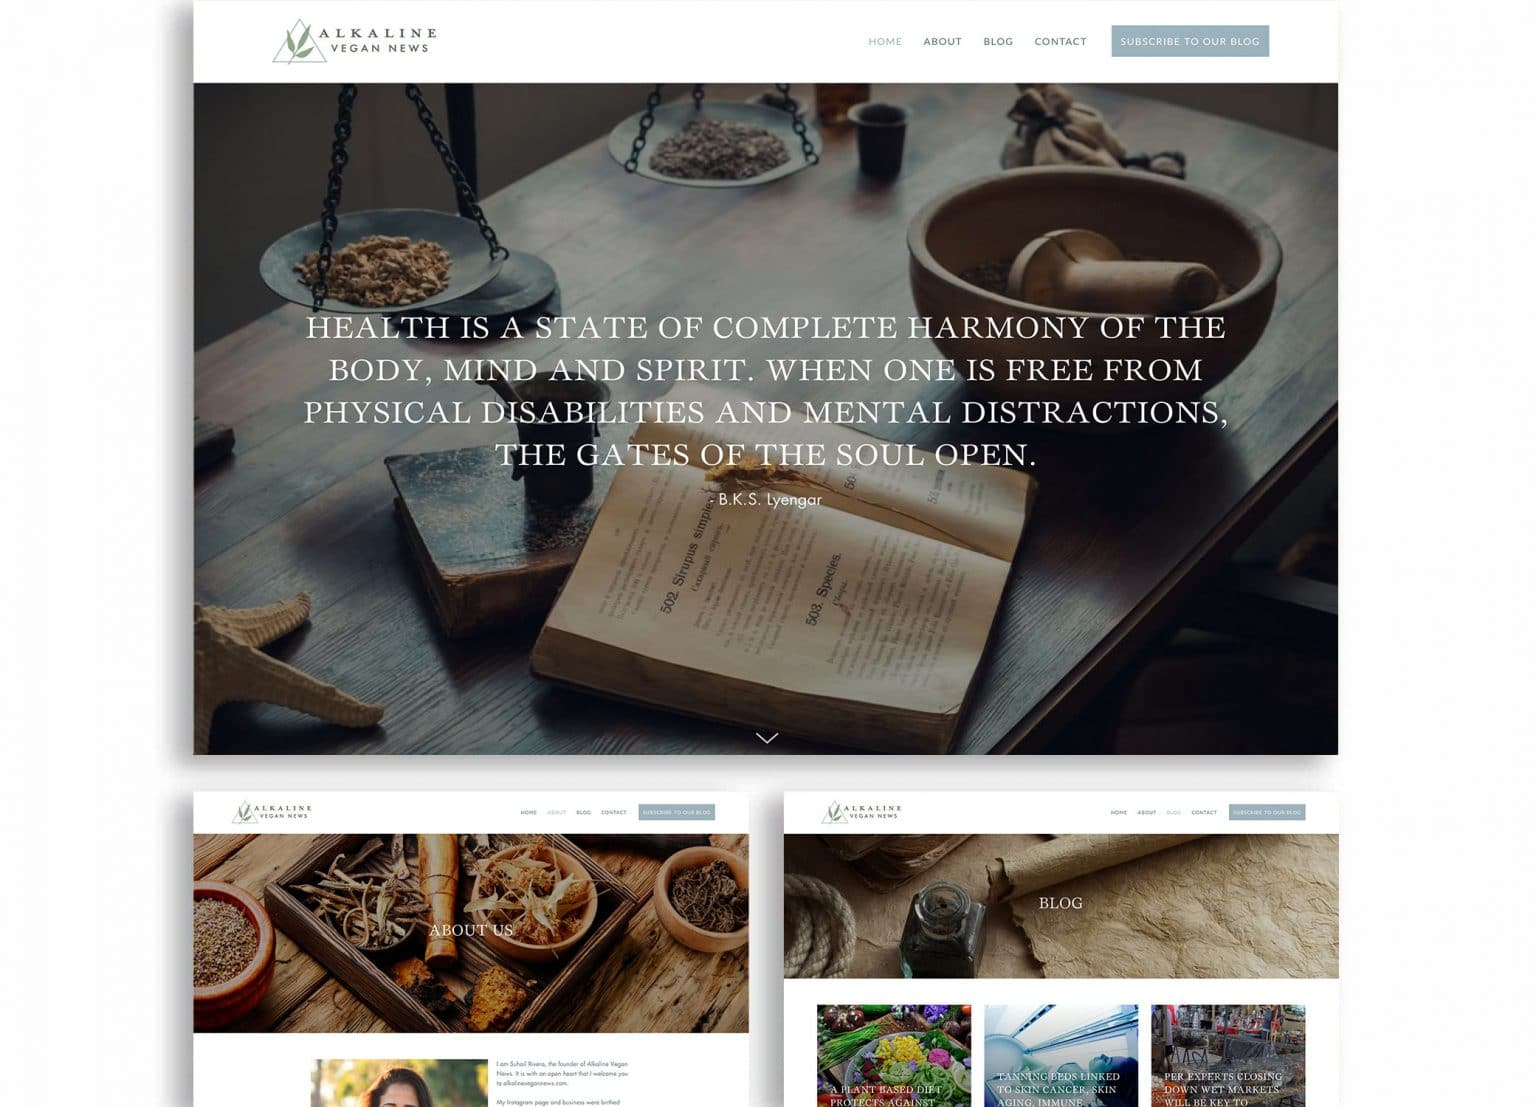 Alkaline Vegan News website homepage design with apothecary images in muted tones of sage green, gray, and black.